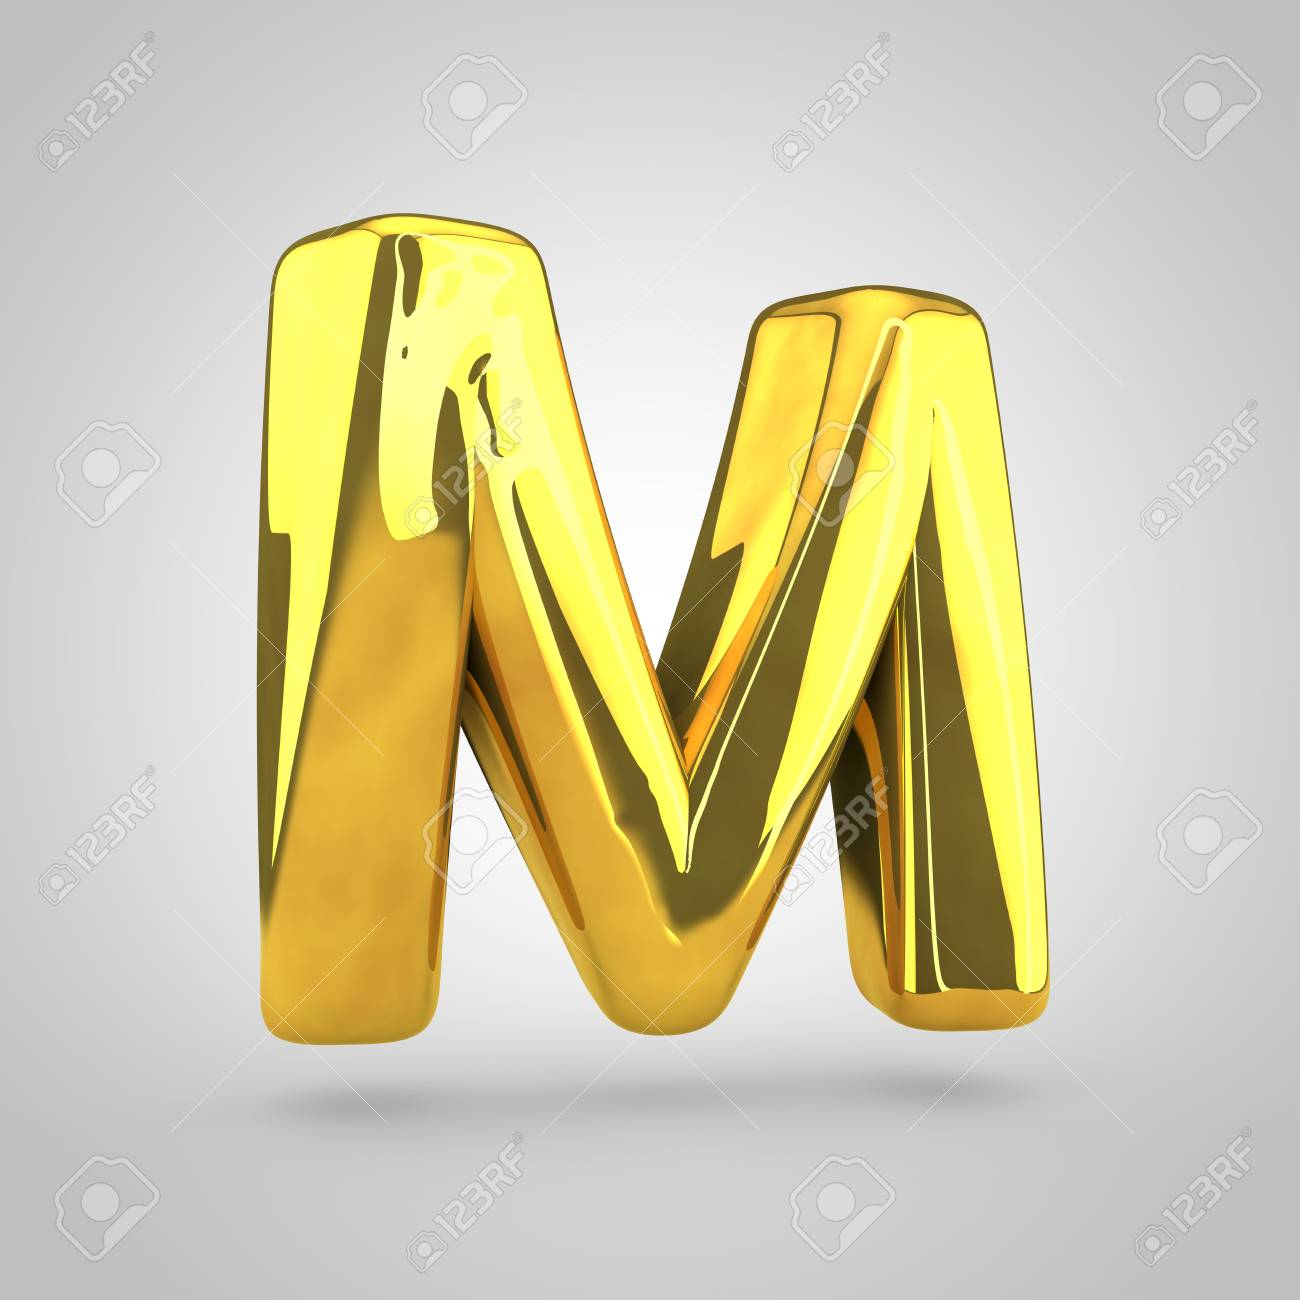 0d88faf8551f7 ... Golden letter M uppercase. 3D rendering of golden twisted font isolated  on white background.